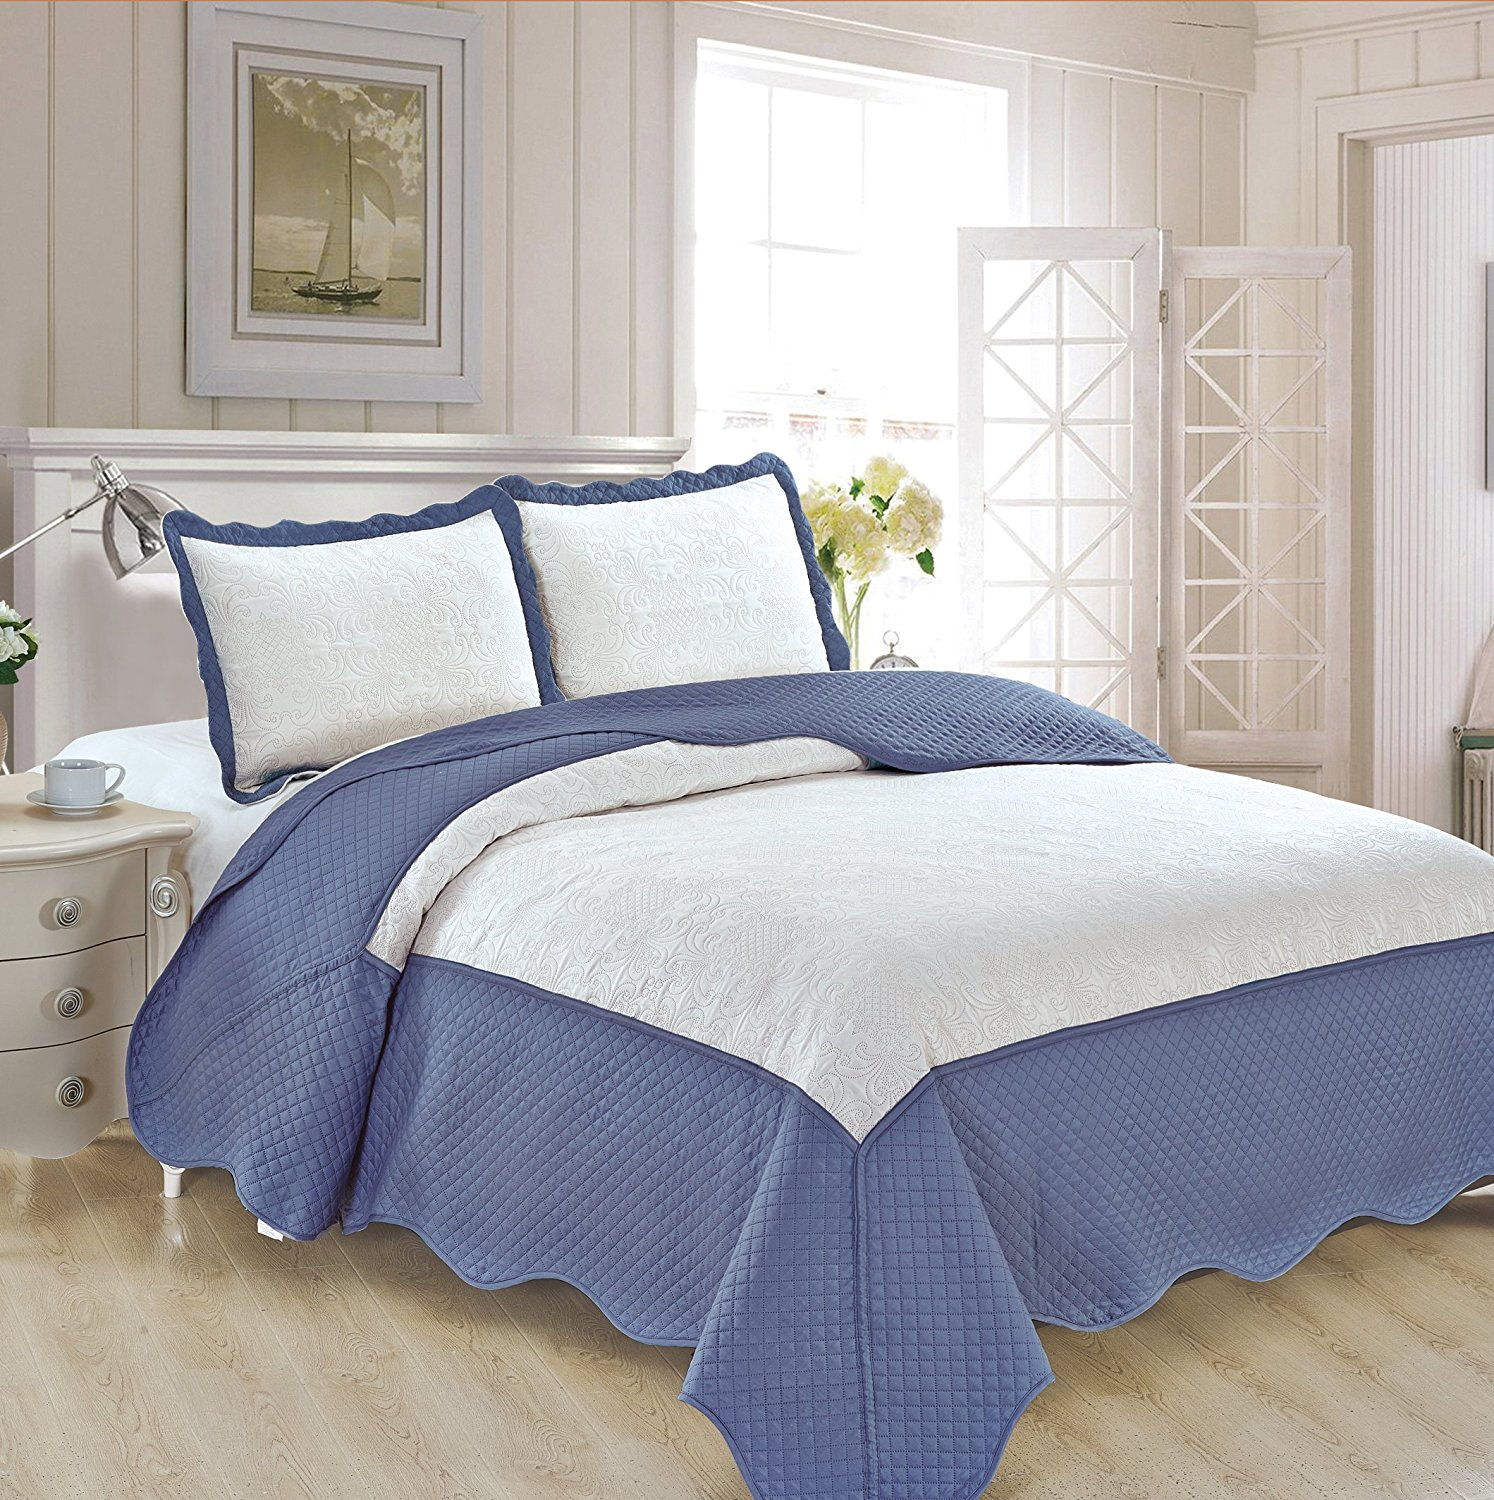 """Fancy Collection 3pc Luxury Bedspread Coverlet Embossed Bed Cover Solid Tow Tune White/Blue New Over Size King /California King 118"""" x 106"""" #Veronica"""